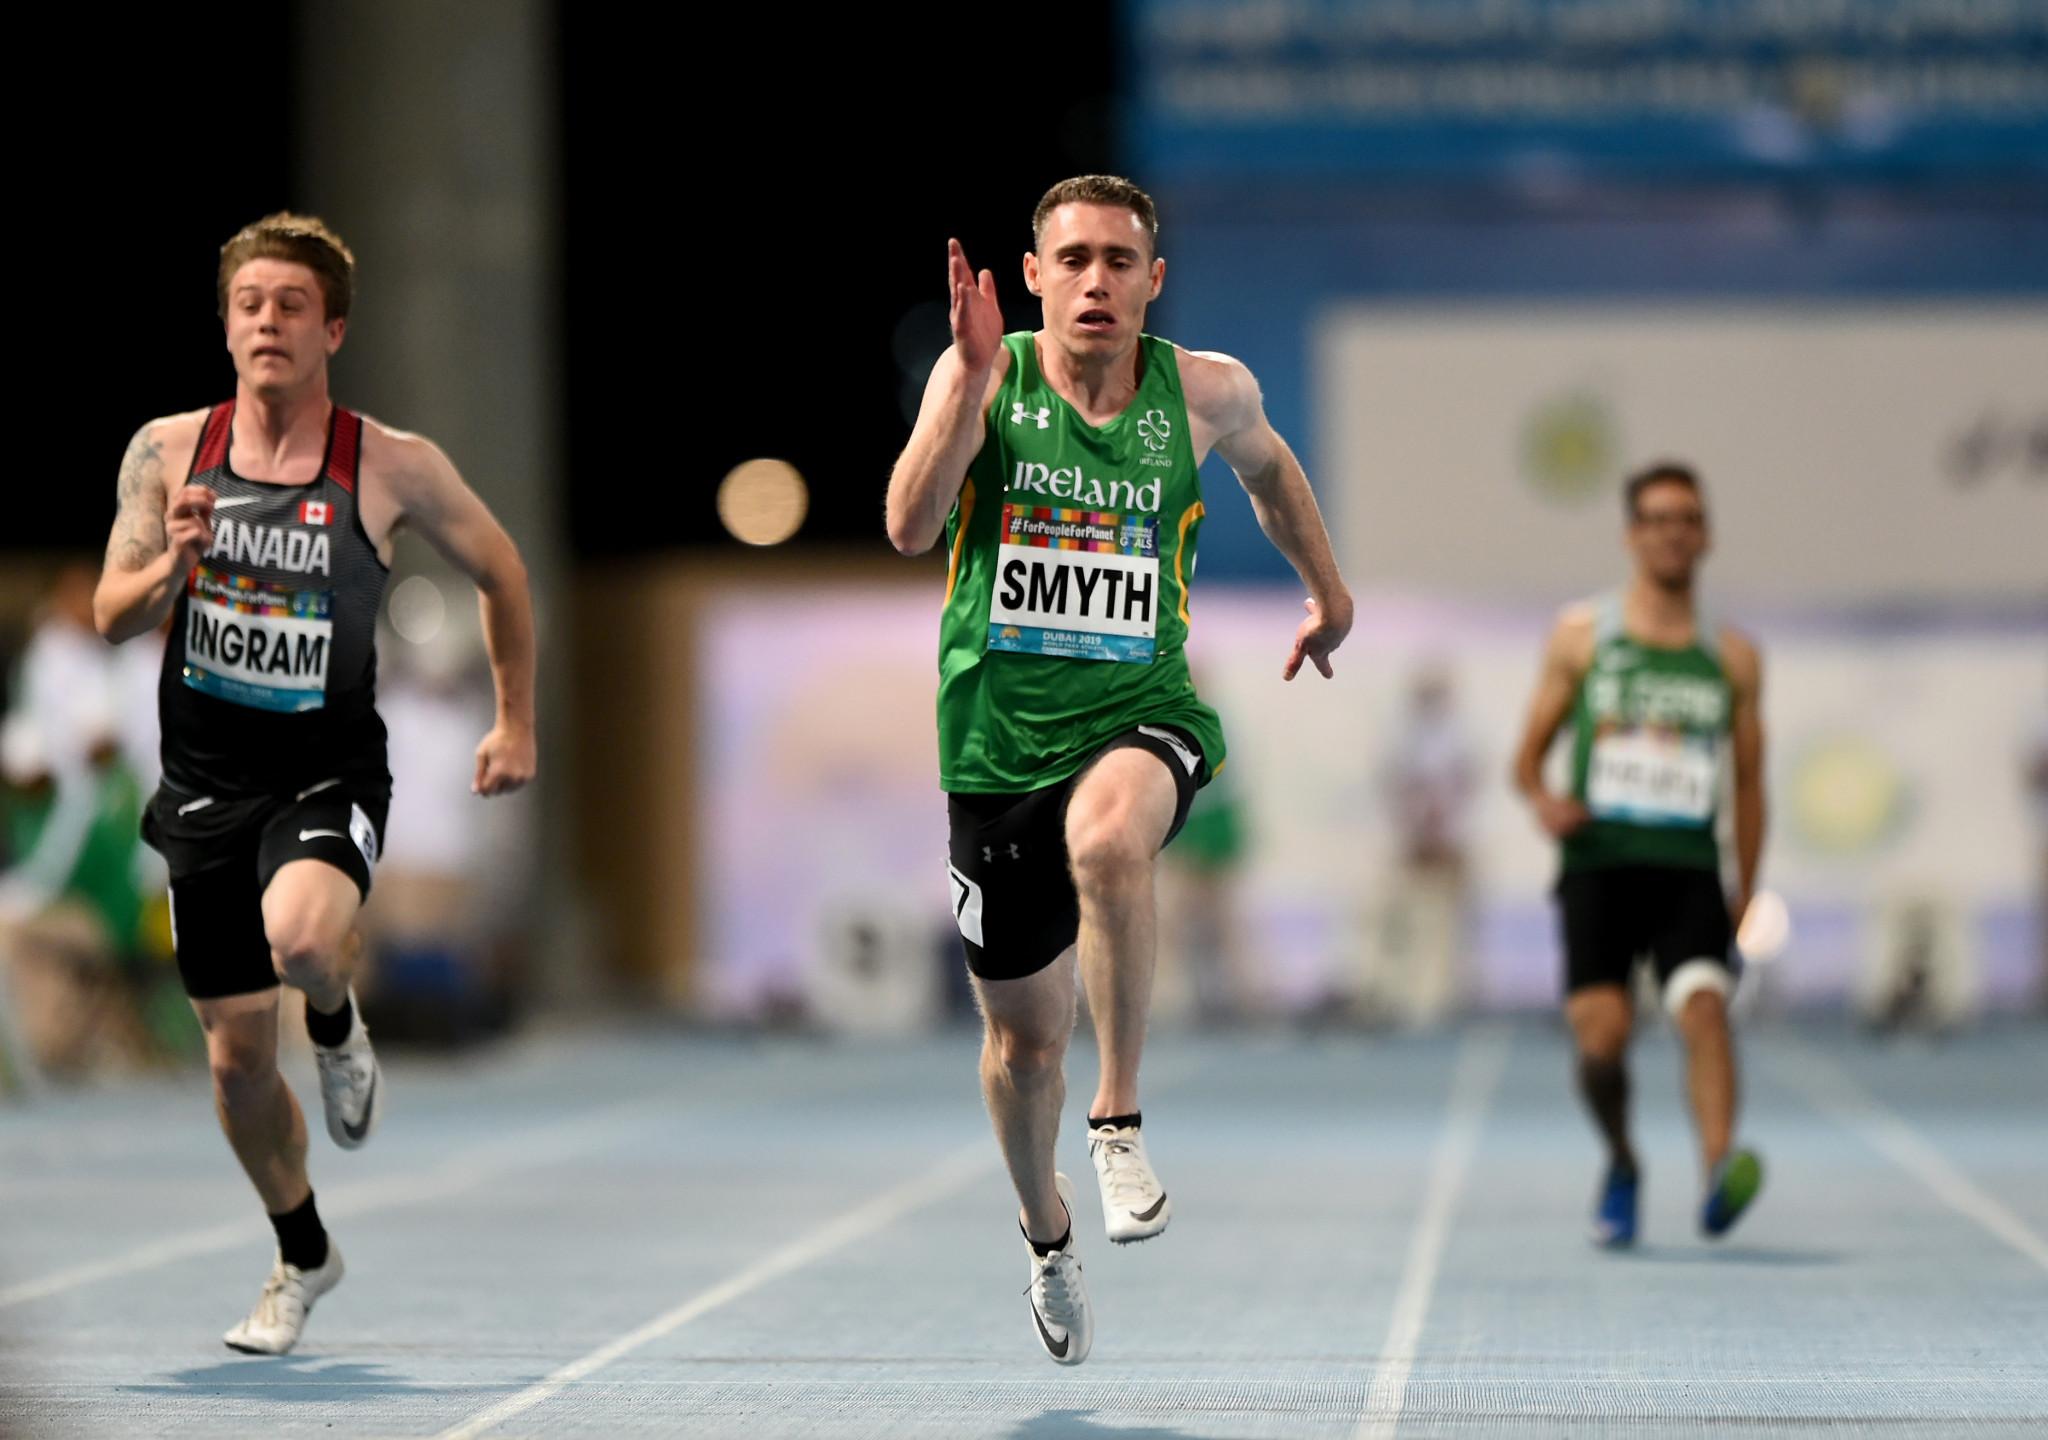 Ireland's Jason Smyth won his eighth world title ©Getty Images